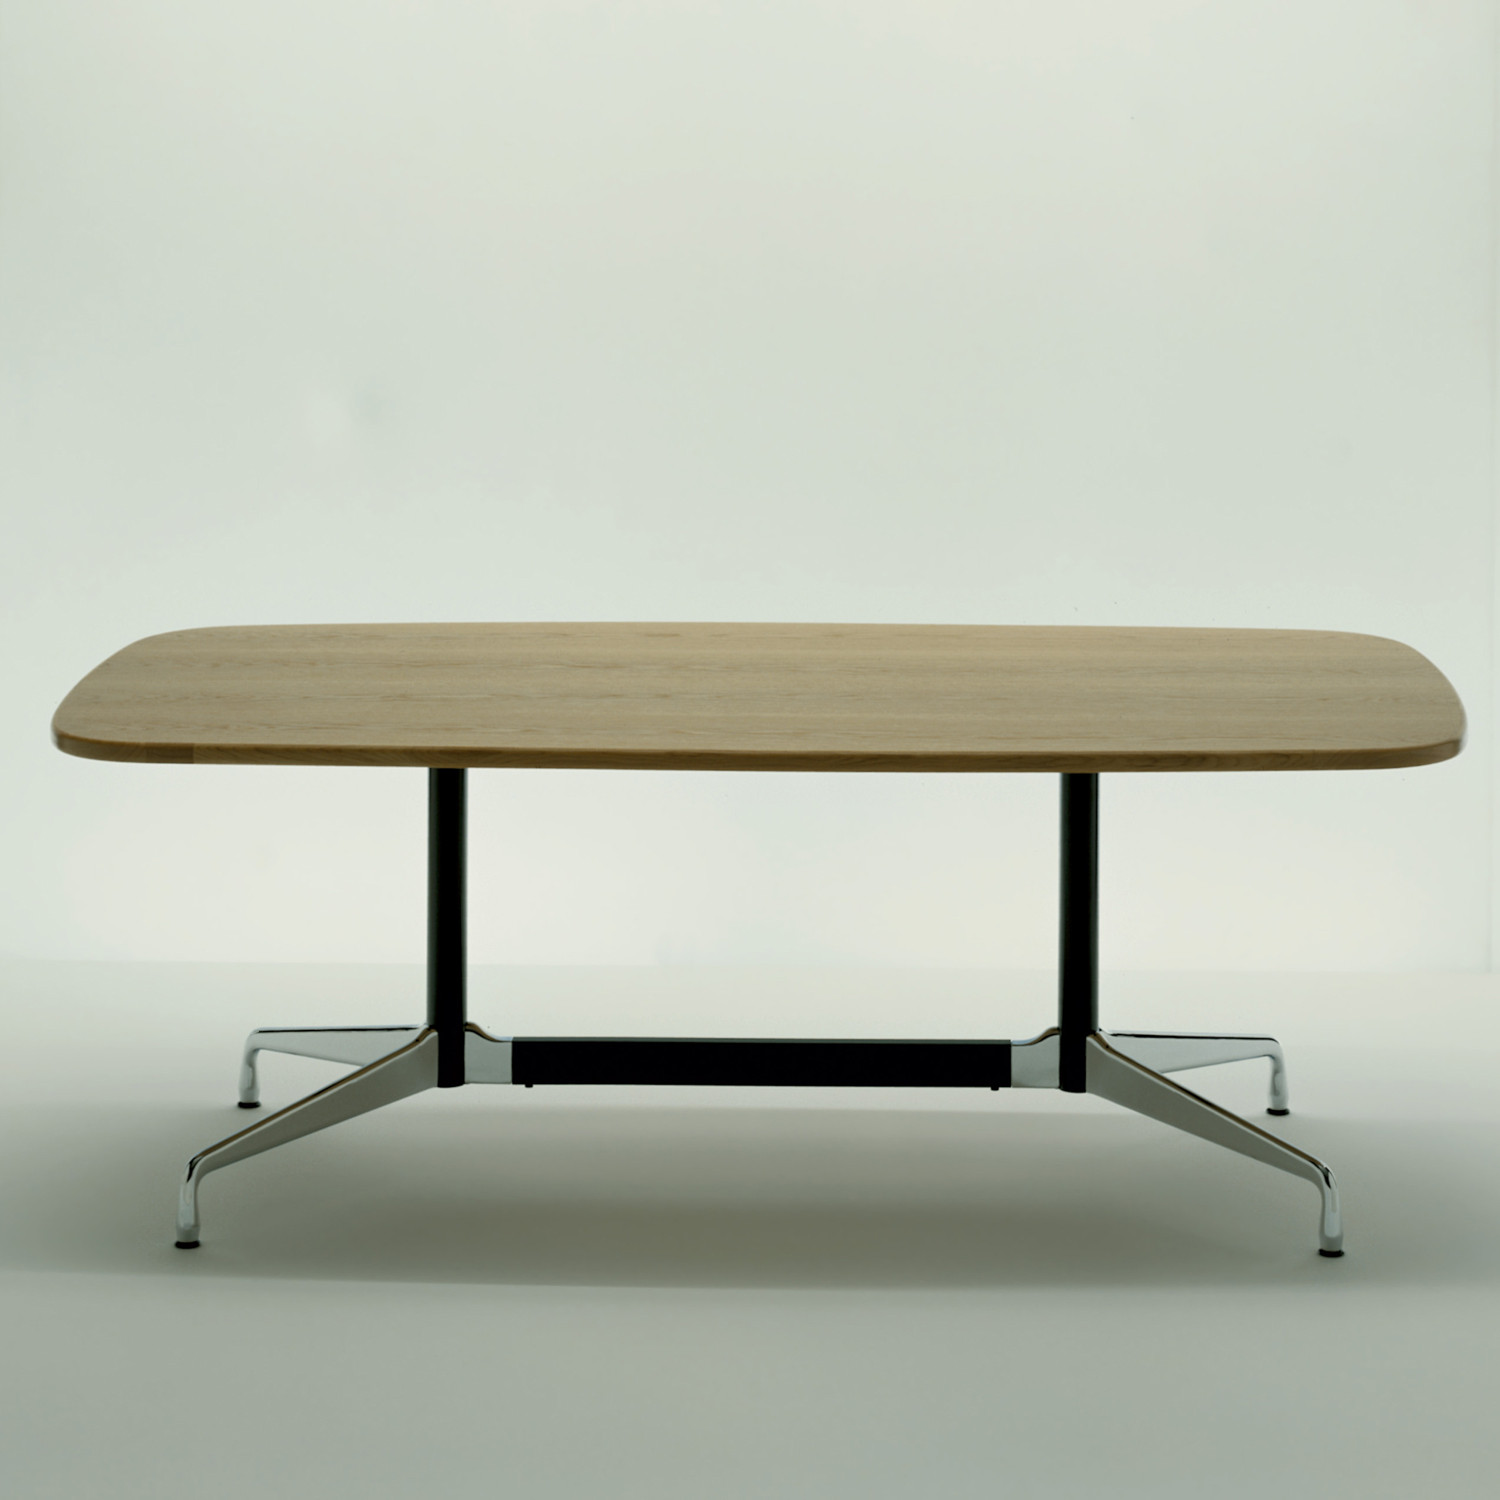 Eames Vitra Table Eames Meeting Tables Conference And Meeting Tables Apres